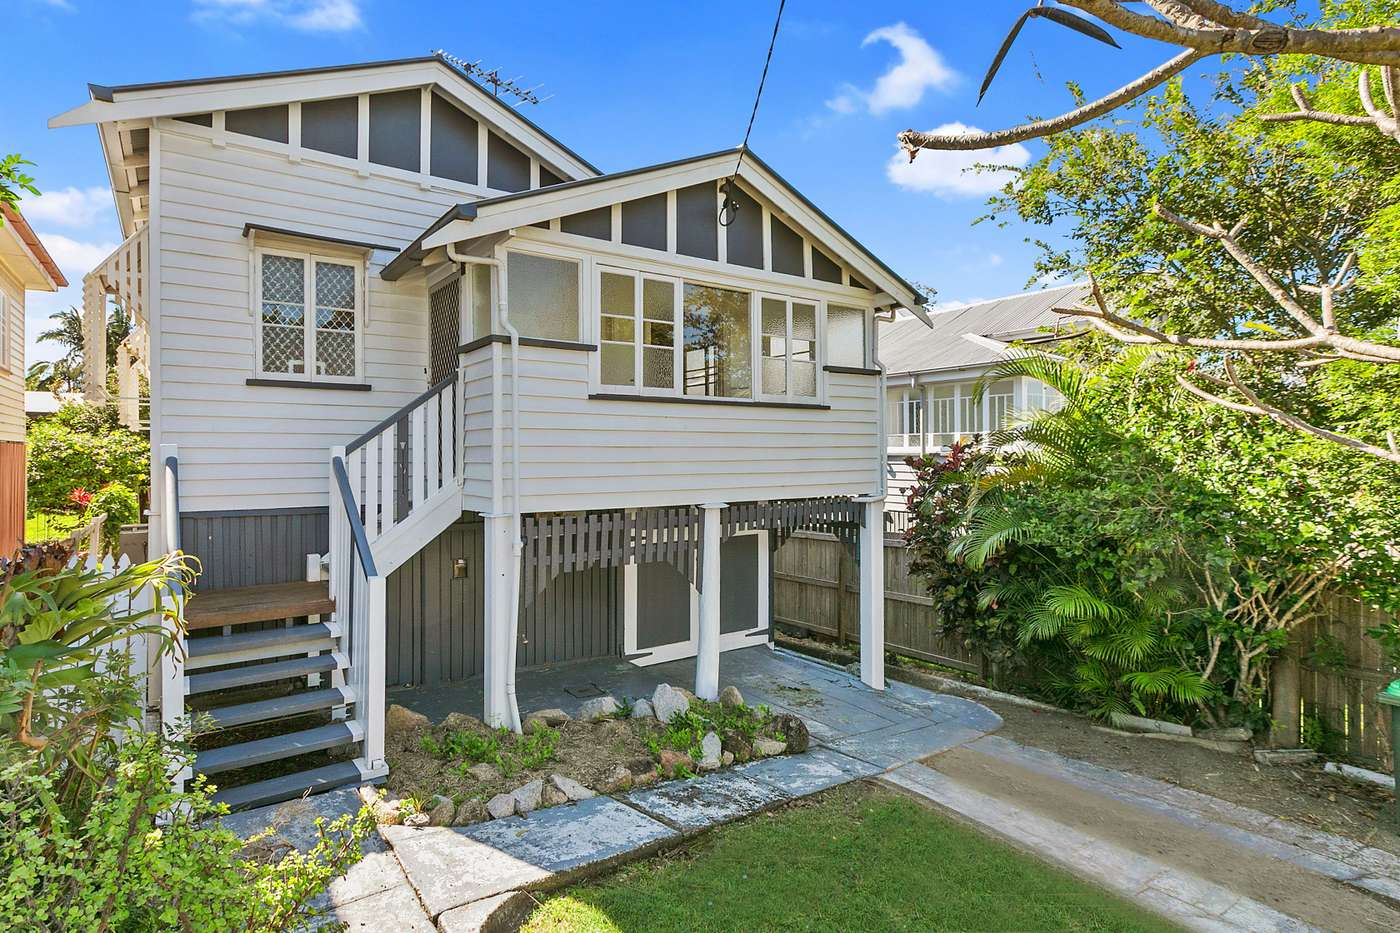 Main view of Homely house listing, 30 Aubigny Street, Annerley, QLD 4103